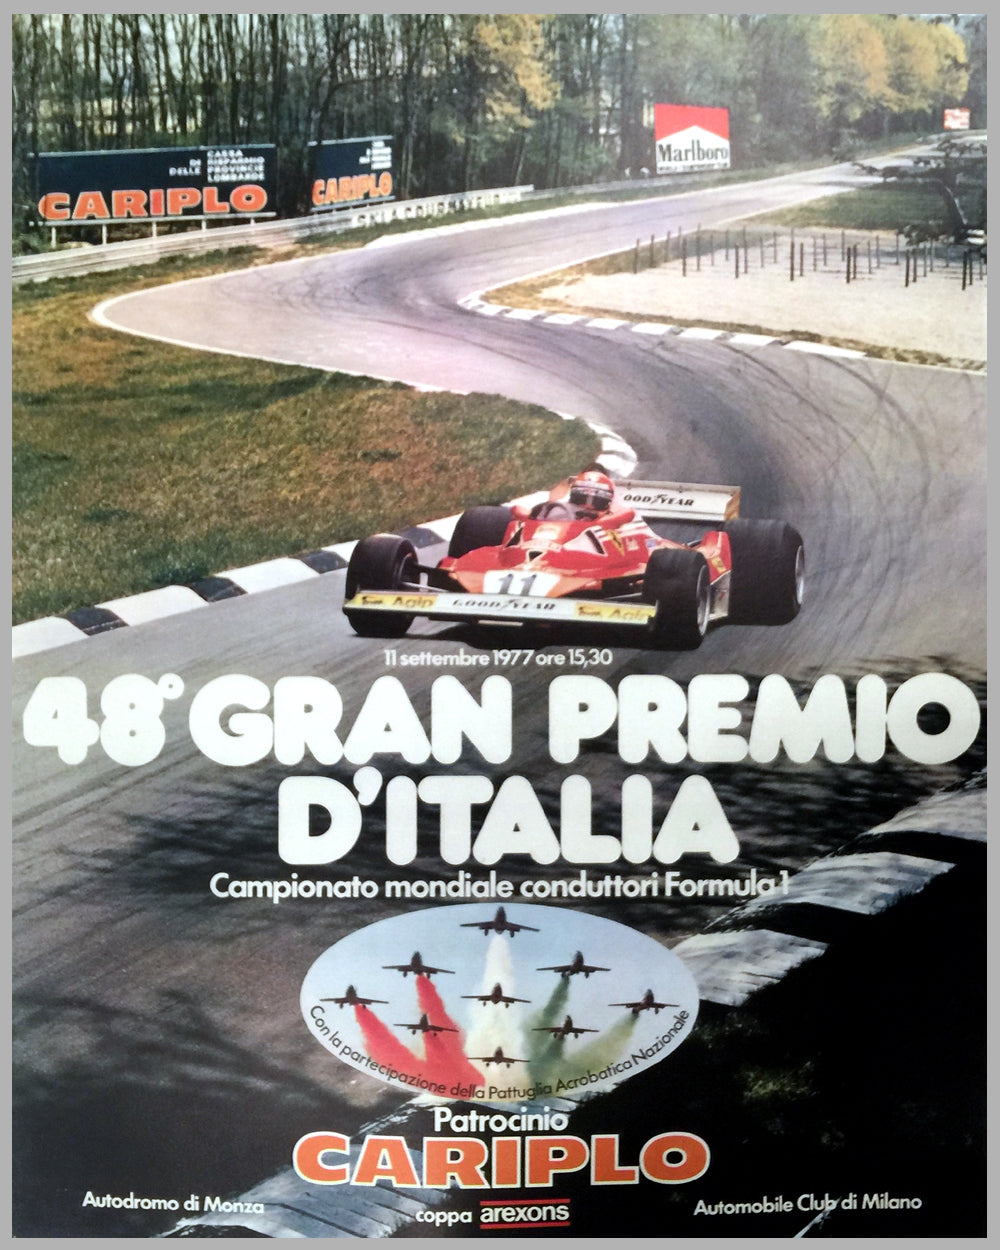 1977 - 48th Grand Prix d' Italia in Monza poster